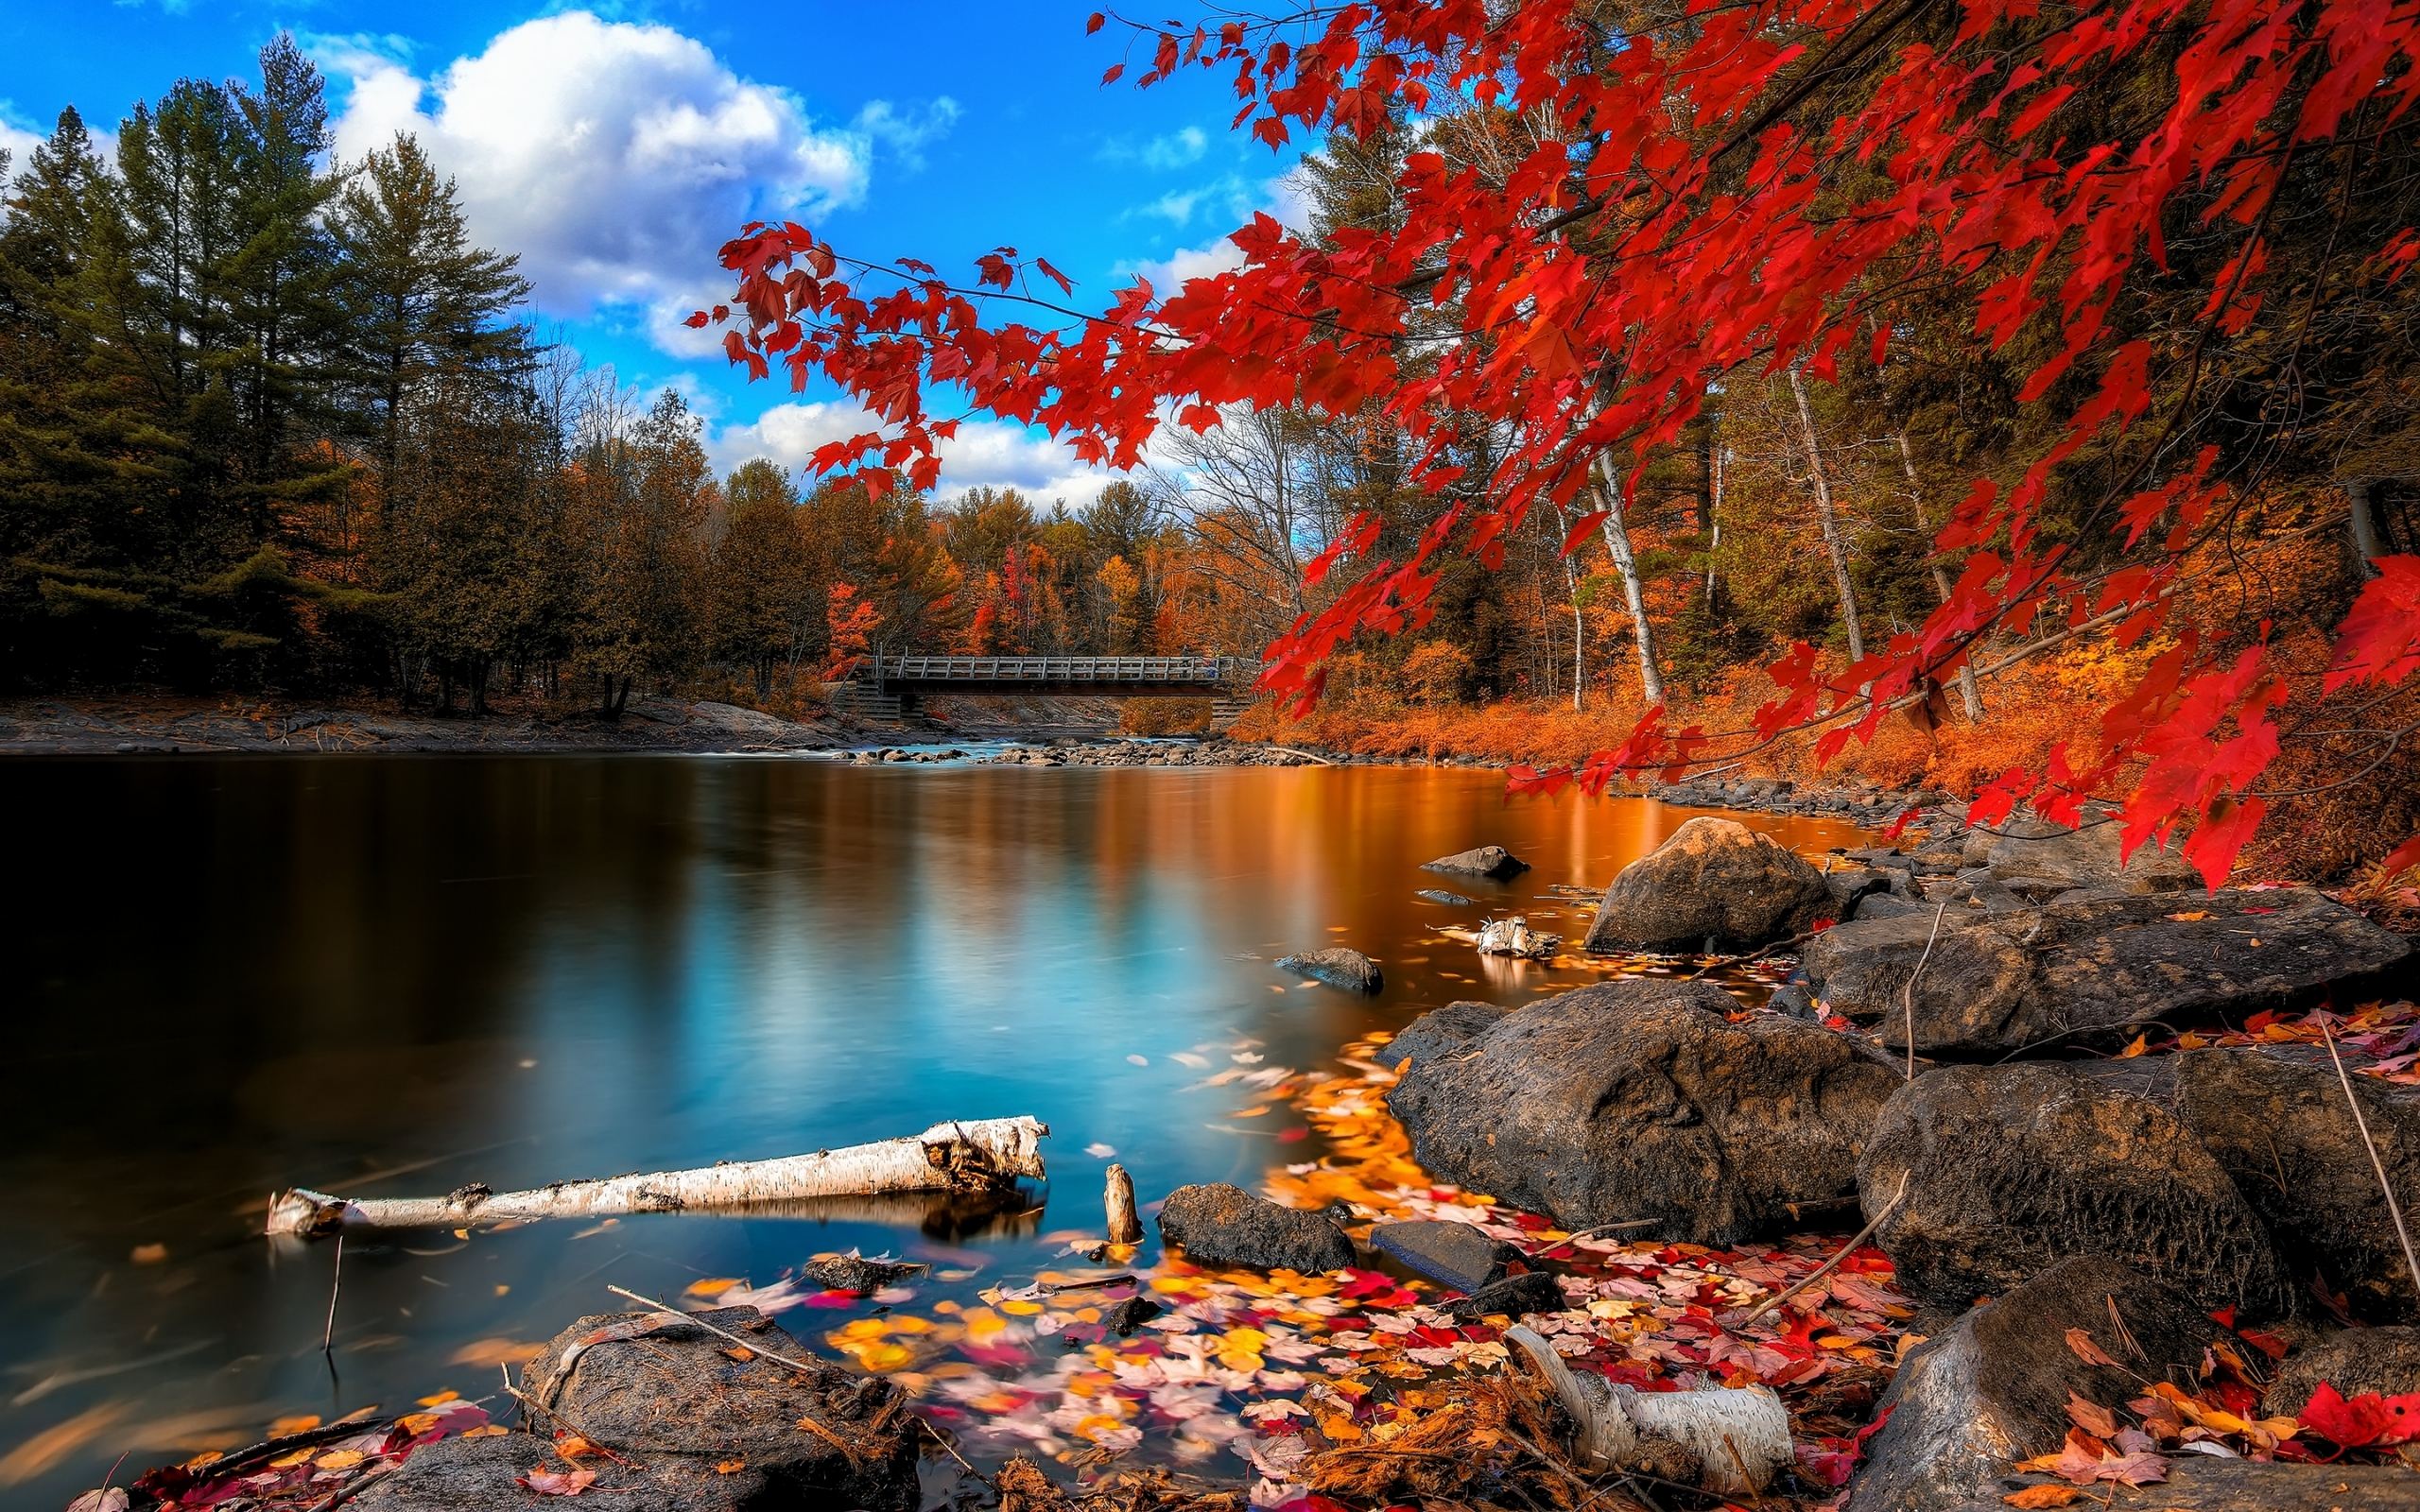 Autumn Desktop Wallpaper Hd Posted By Christopher Sellers